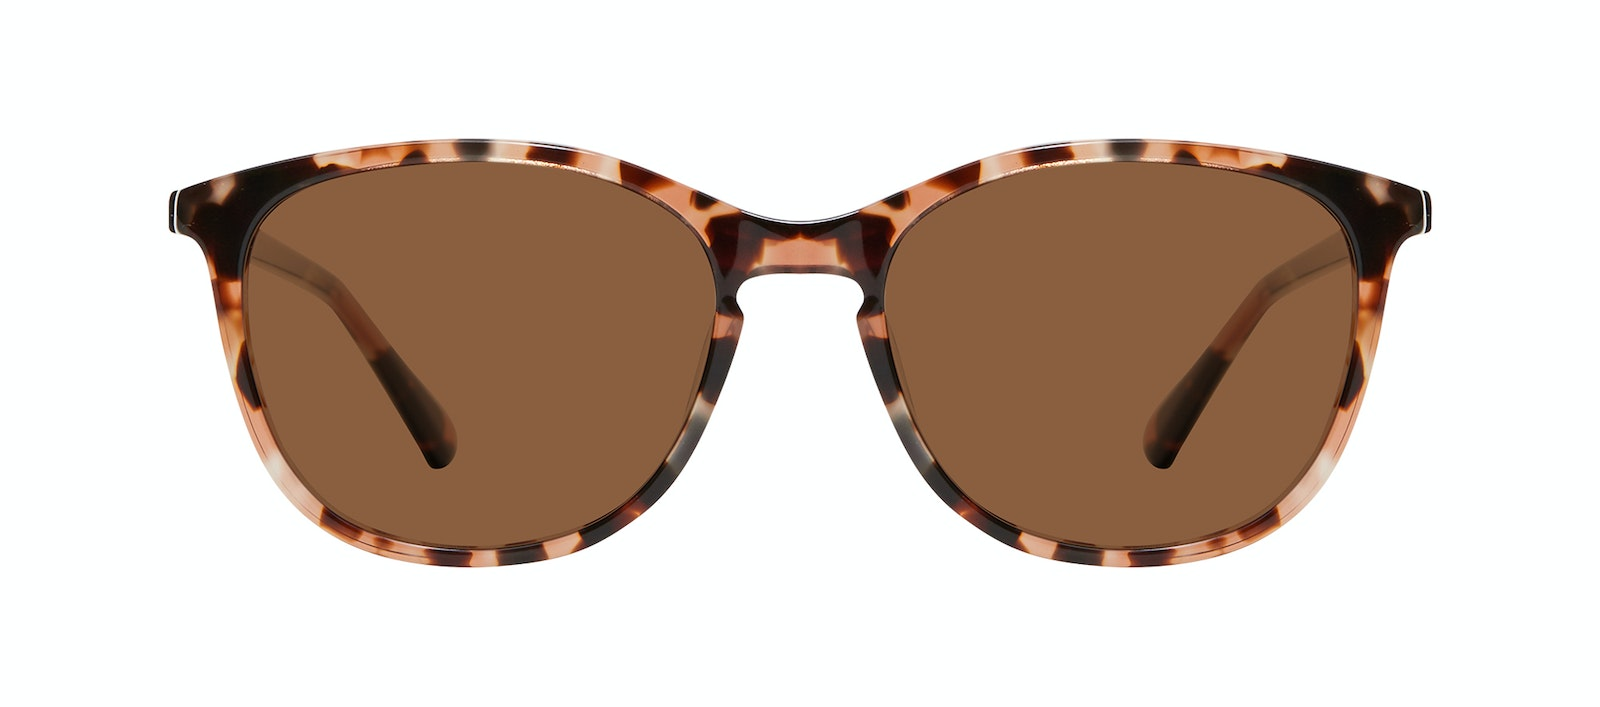 Affordable Fashion Glasses Rectangle Square Round Sunglasses Women Nadine XL Pink Tortoise Front